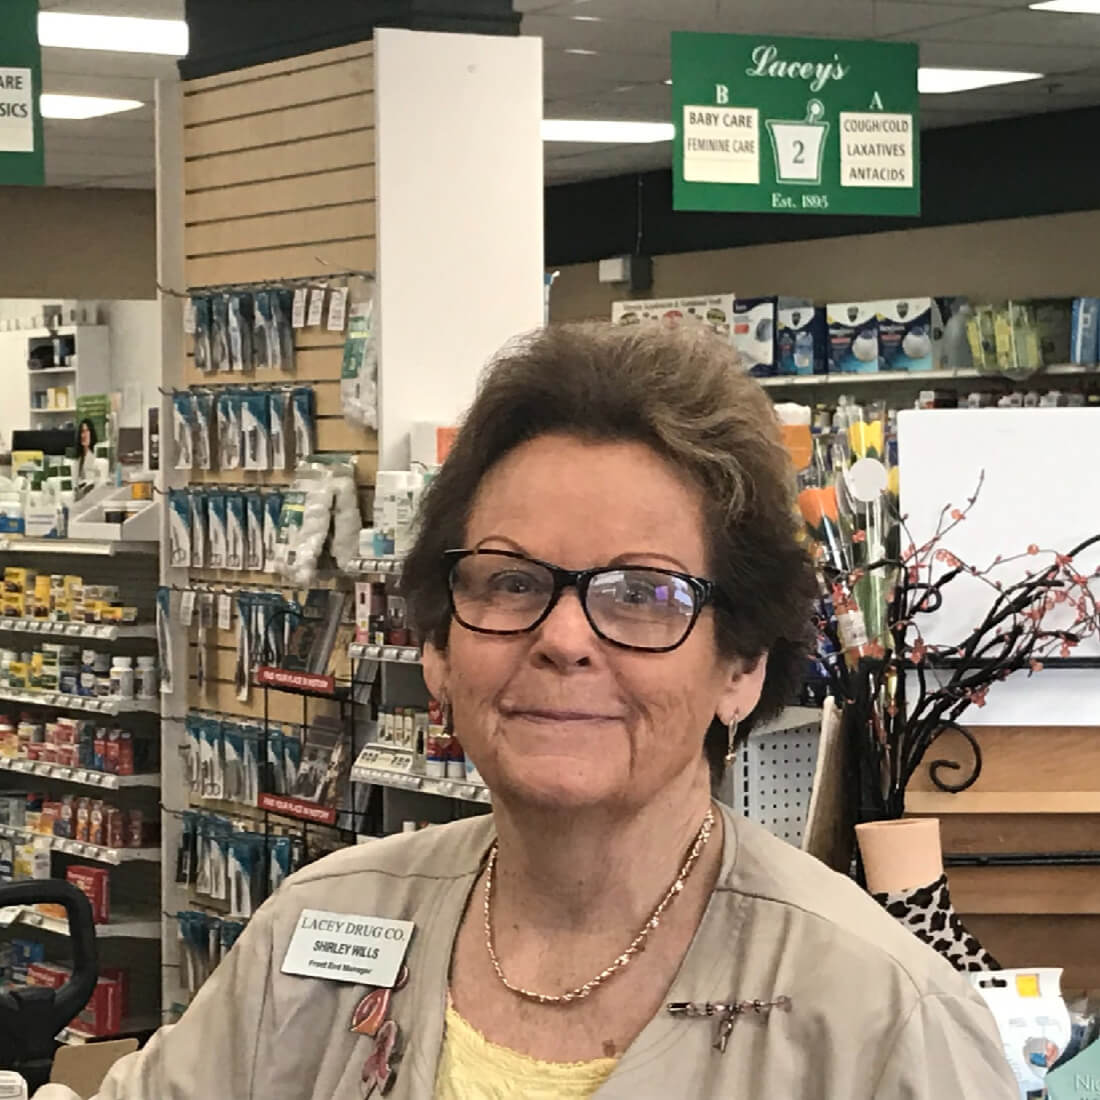 Shirley Wills Is the front-end retail manager at Lacey Drug Company In Acworth, GA.